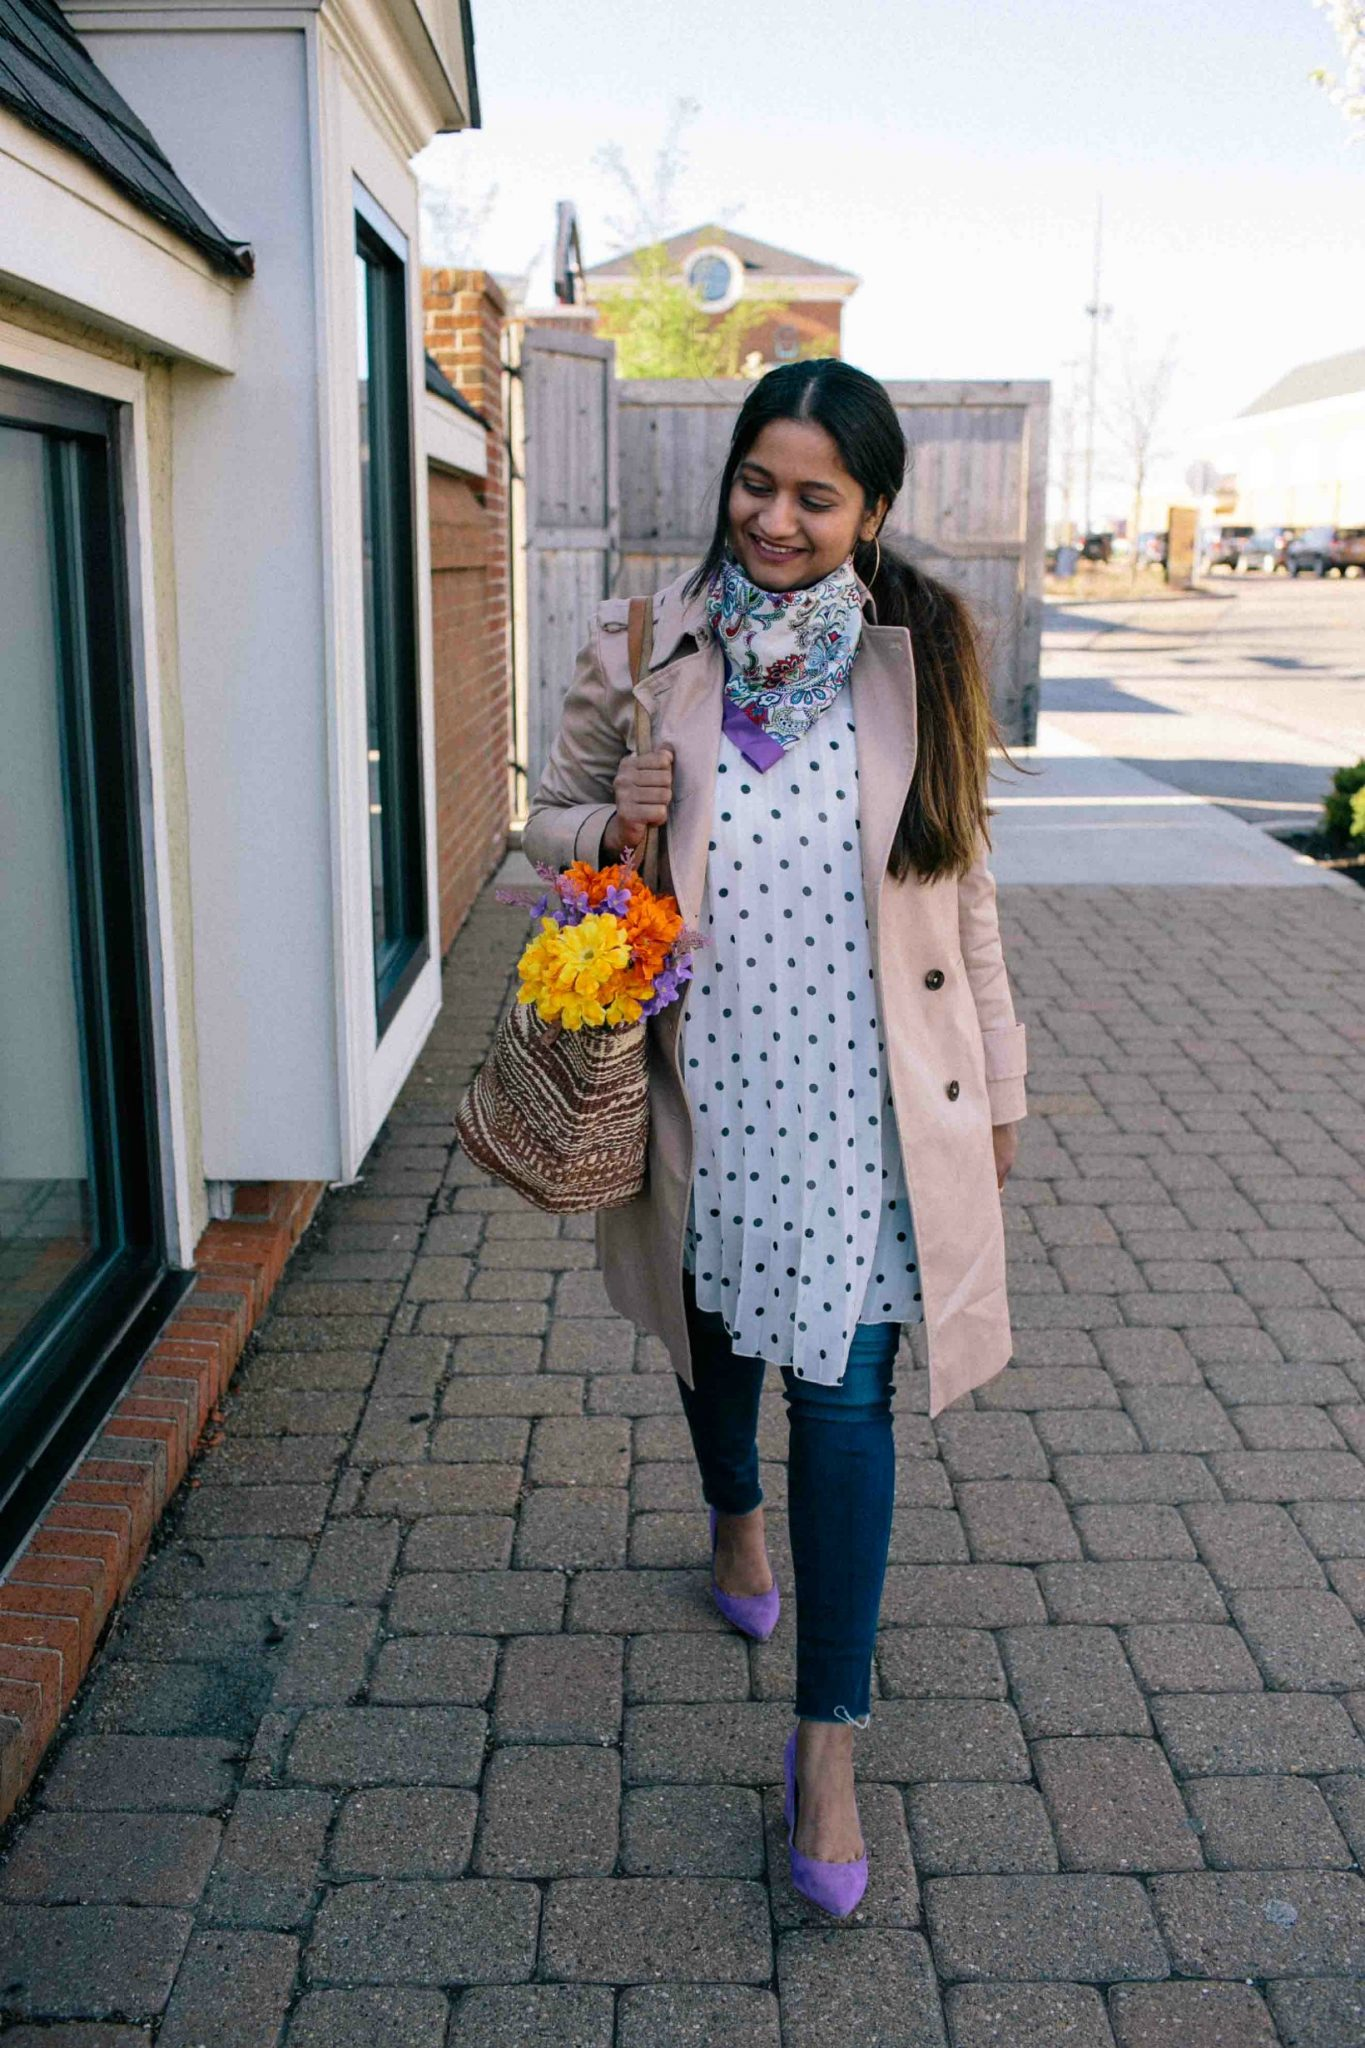 Brooks brothers Cotton Twill Trench Coat -Must Have Spring & Summer Lightweight Jackets featured by popular Ohio modest fashion blogger, Dreaming Loud | Lightweight Jackets by popular Maryland modest fashion blog, Dreaming Loud: image of a woman wearing a tan cotton twill jacket, black and white polka dot top, jeans, purple suede heels, and pink and blue paisley scarf.